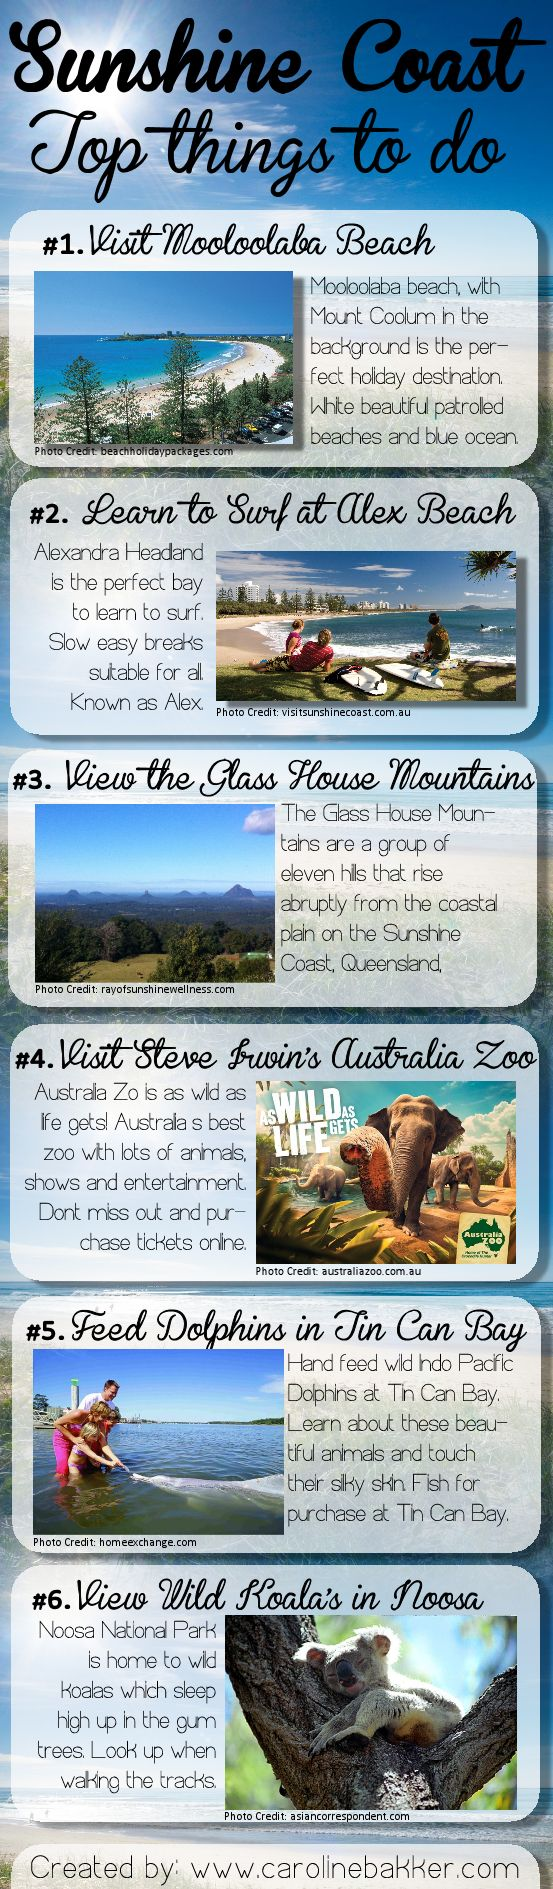 #Sunshine Coast Top Things To Do    Today I have created an infographic kind of image to show you the best #Queenland's Sunshine Coast has to offer. I am a local on the Coast and love the life, the nature, the beaches and everything else the Coast has offer. http://www.carolinebakker.com/sunshine-coast-qld-top-things-to-do